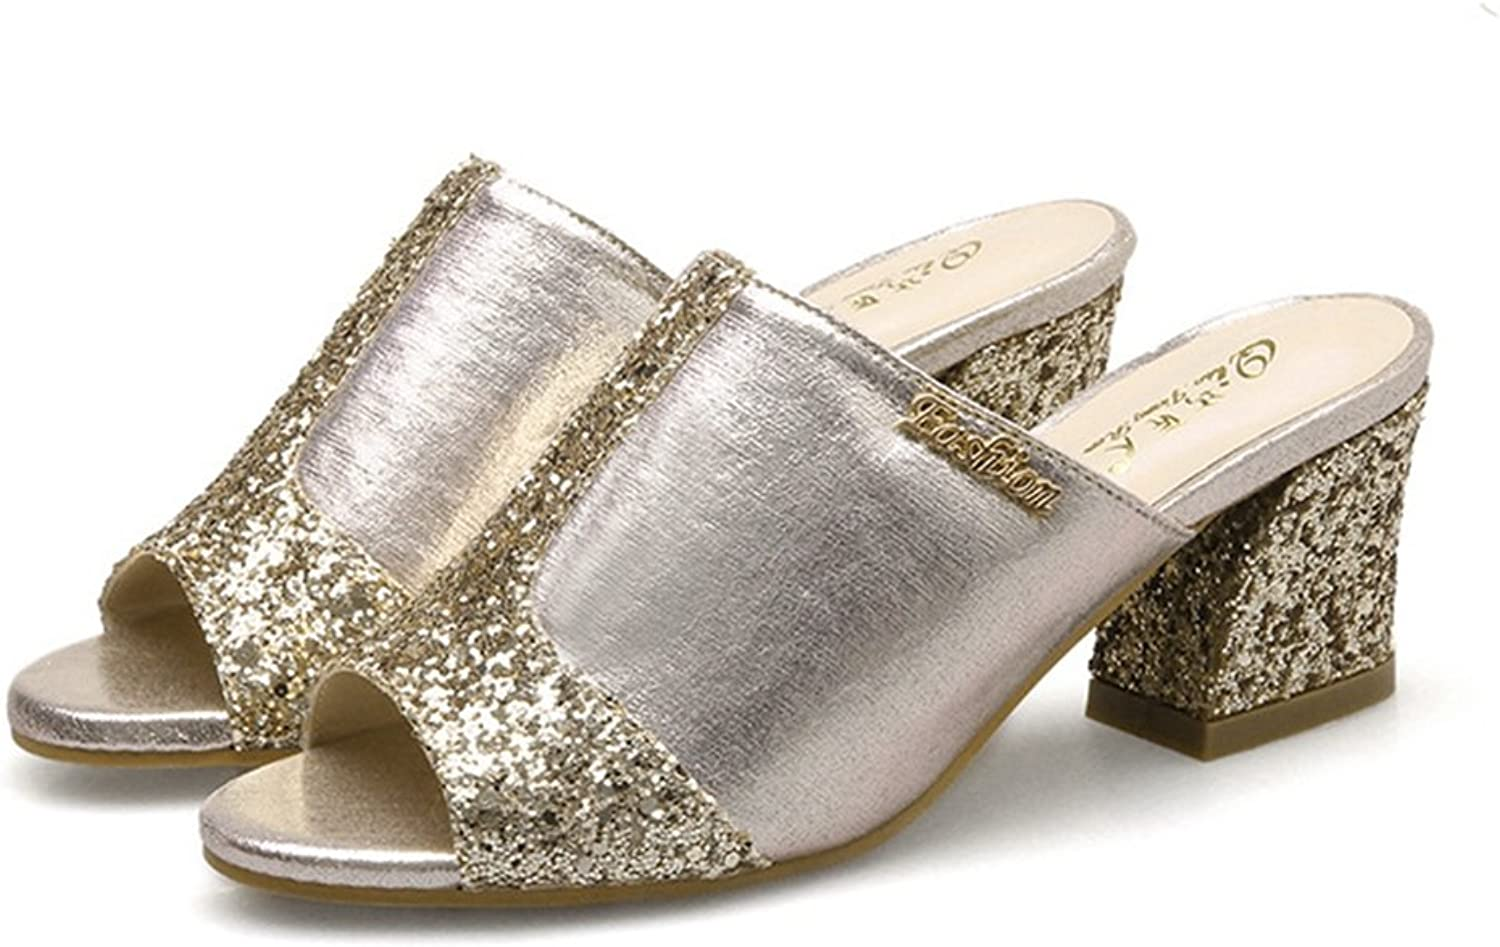 Zarbrina Womens Heeled Sandals Sequins Peep Toe Mid High Block Wedge Party shoes Non-Slip Slides Slippers